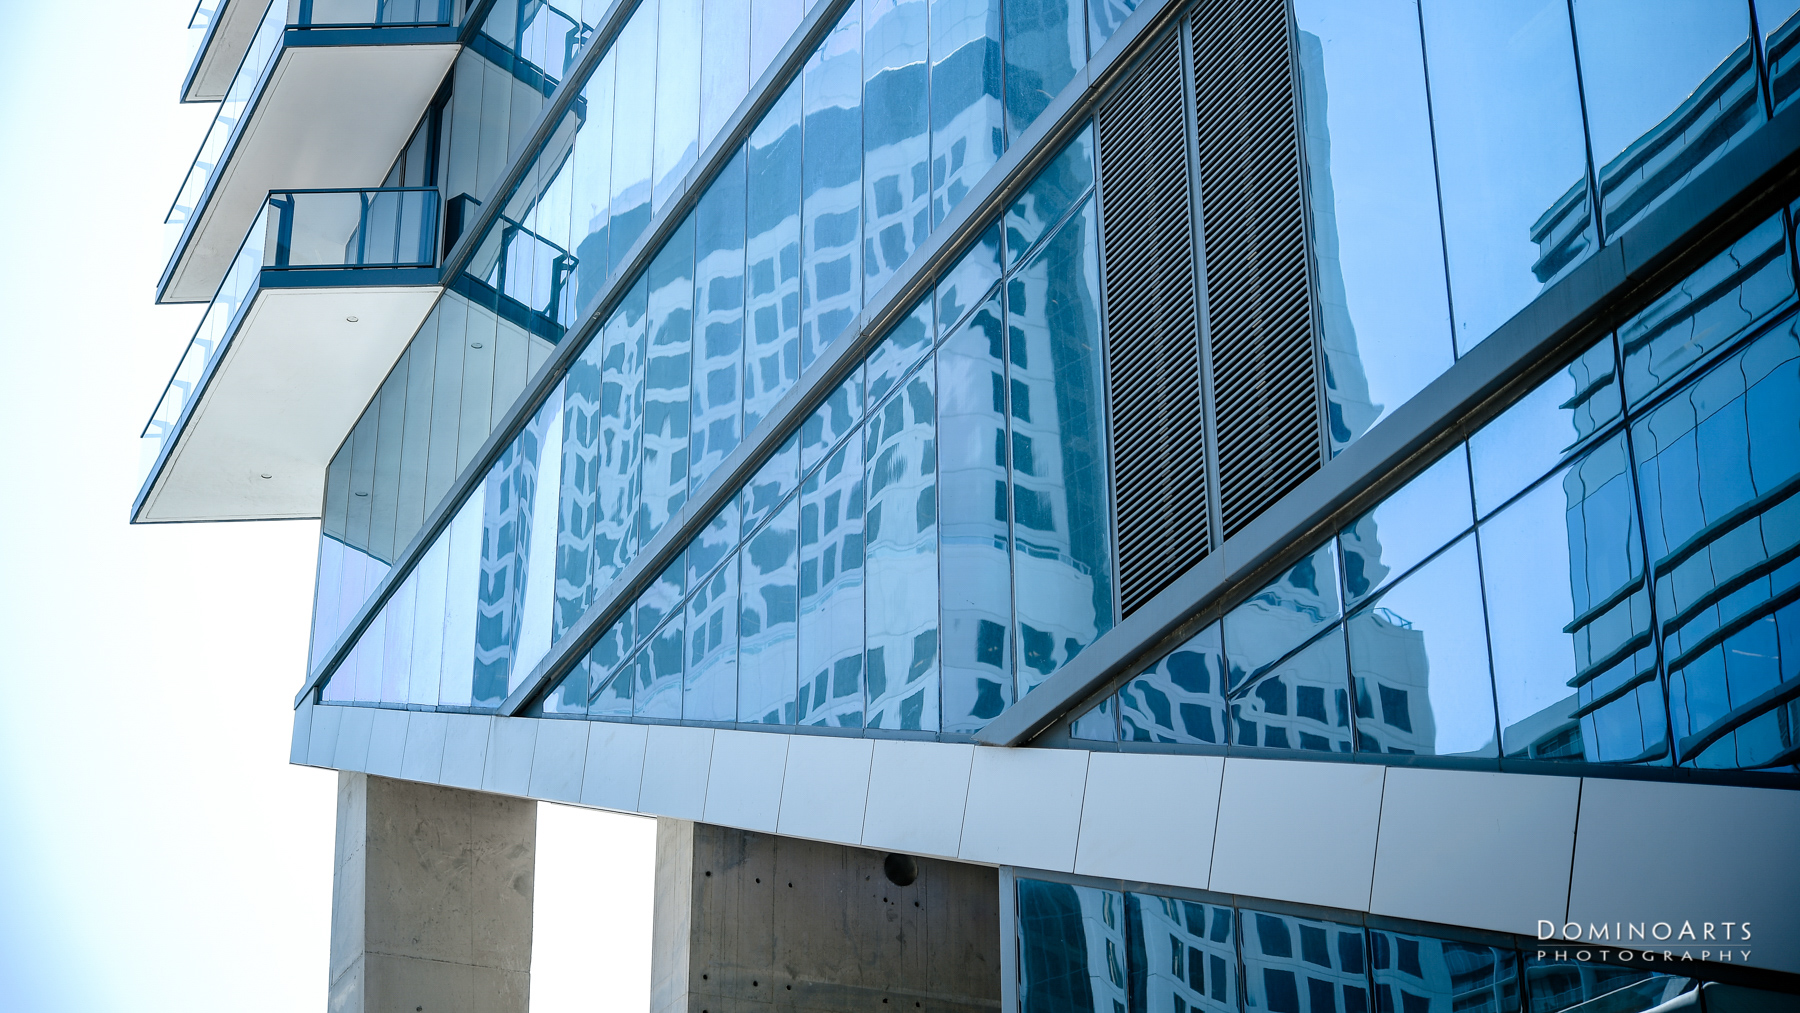 architectural buildings Insigneo Financial Group Corporate Photography by Domino Arts